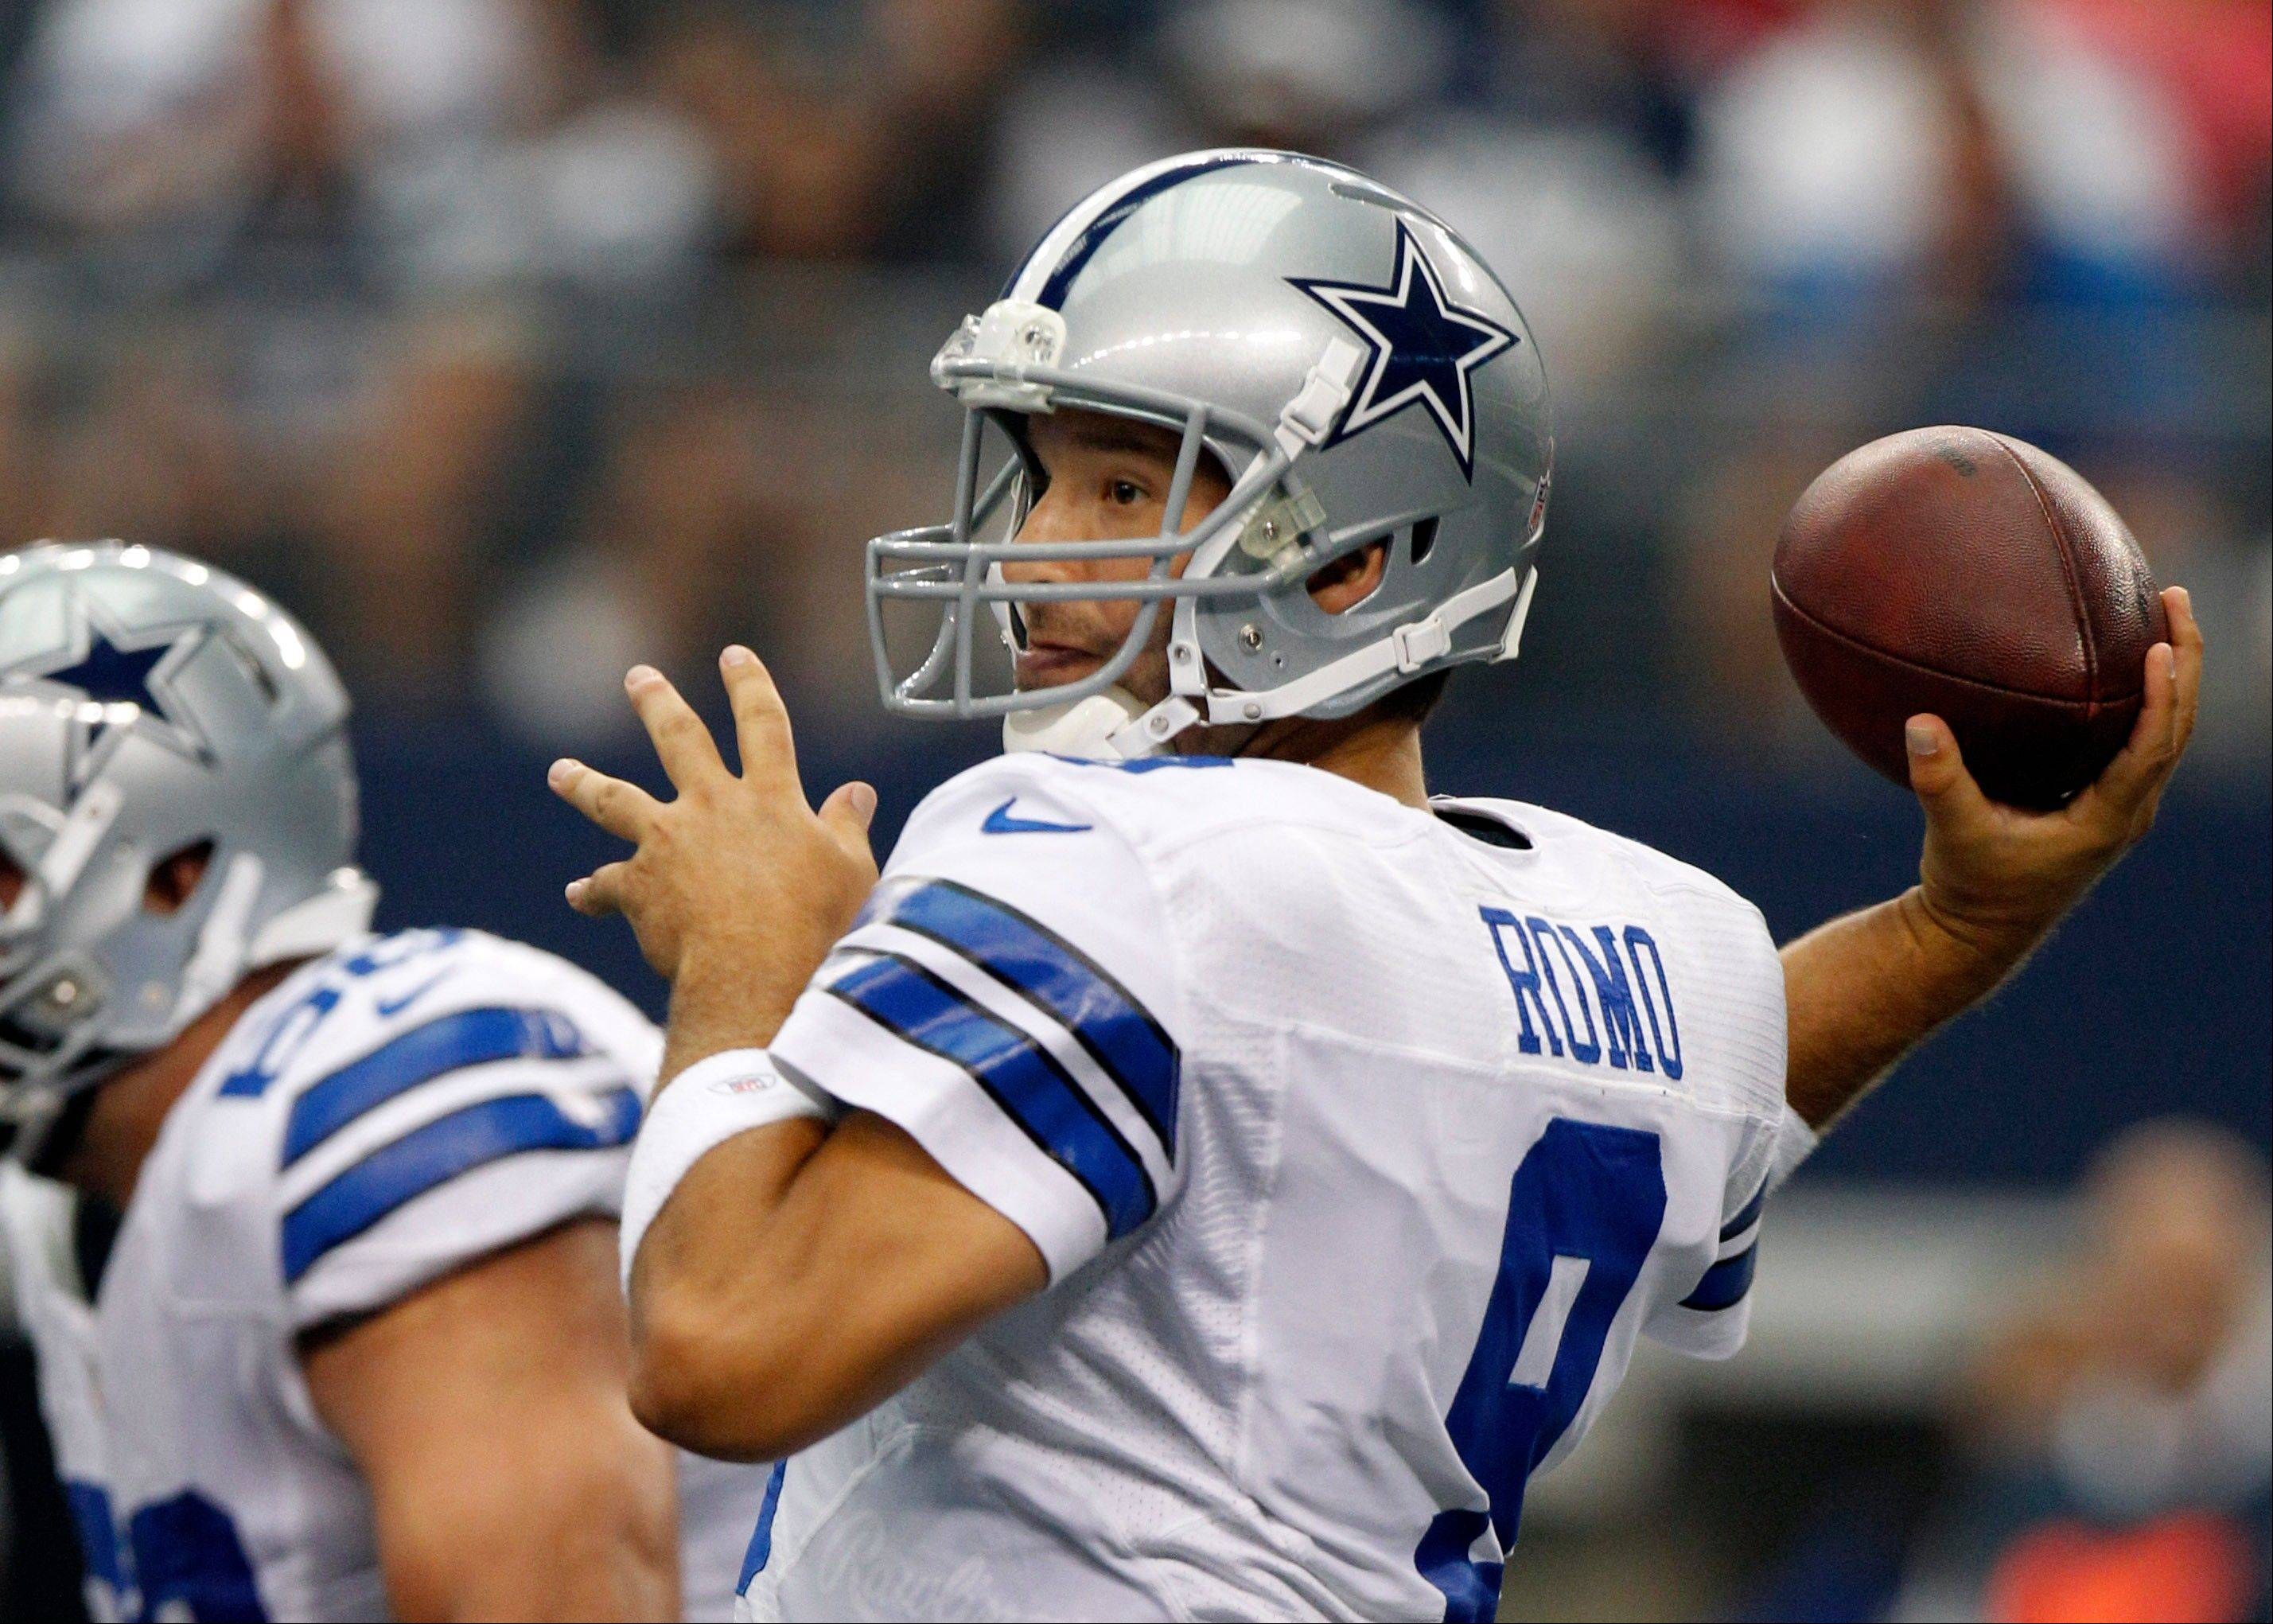 Dallas Cowboys quarterback Tony Romo (9) passes the ball against the Tampa Bay Buccaneers Sunday during the first half in Arlington, Texas.